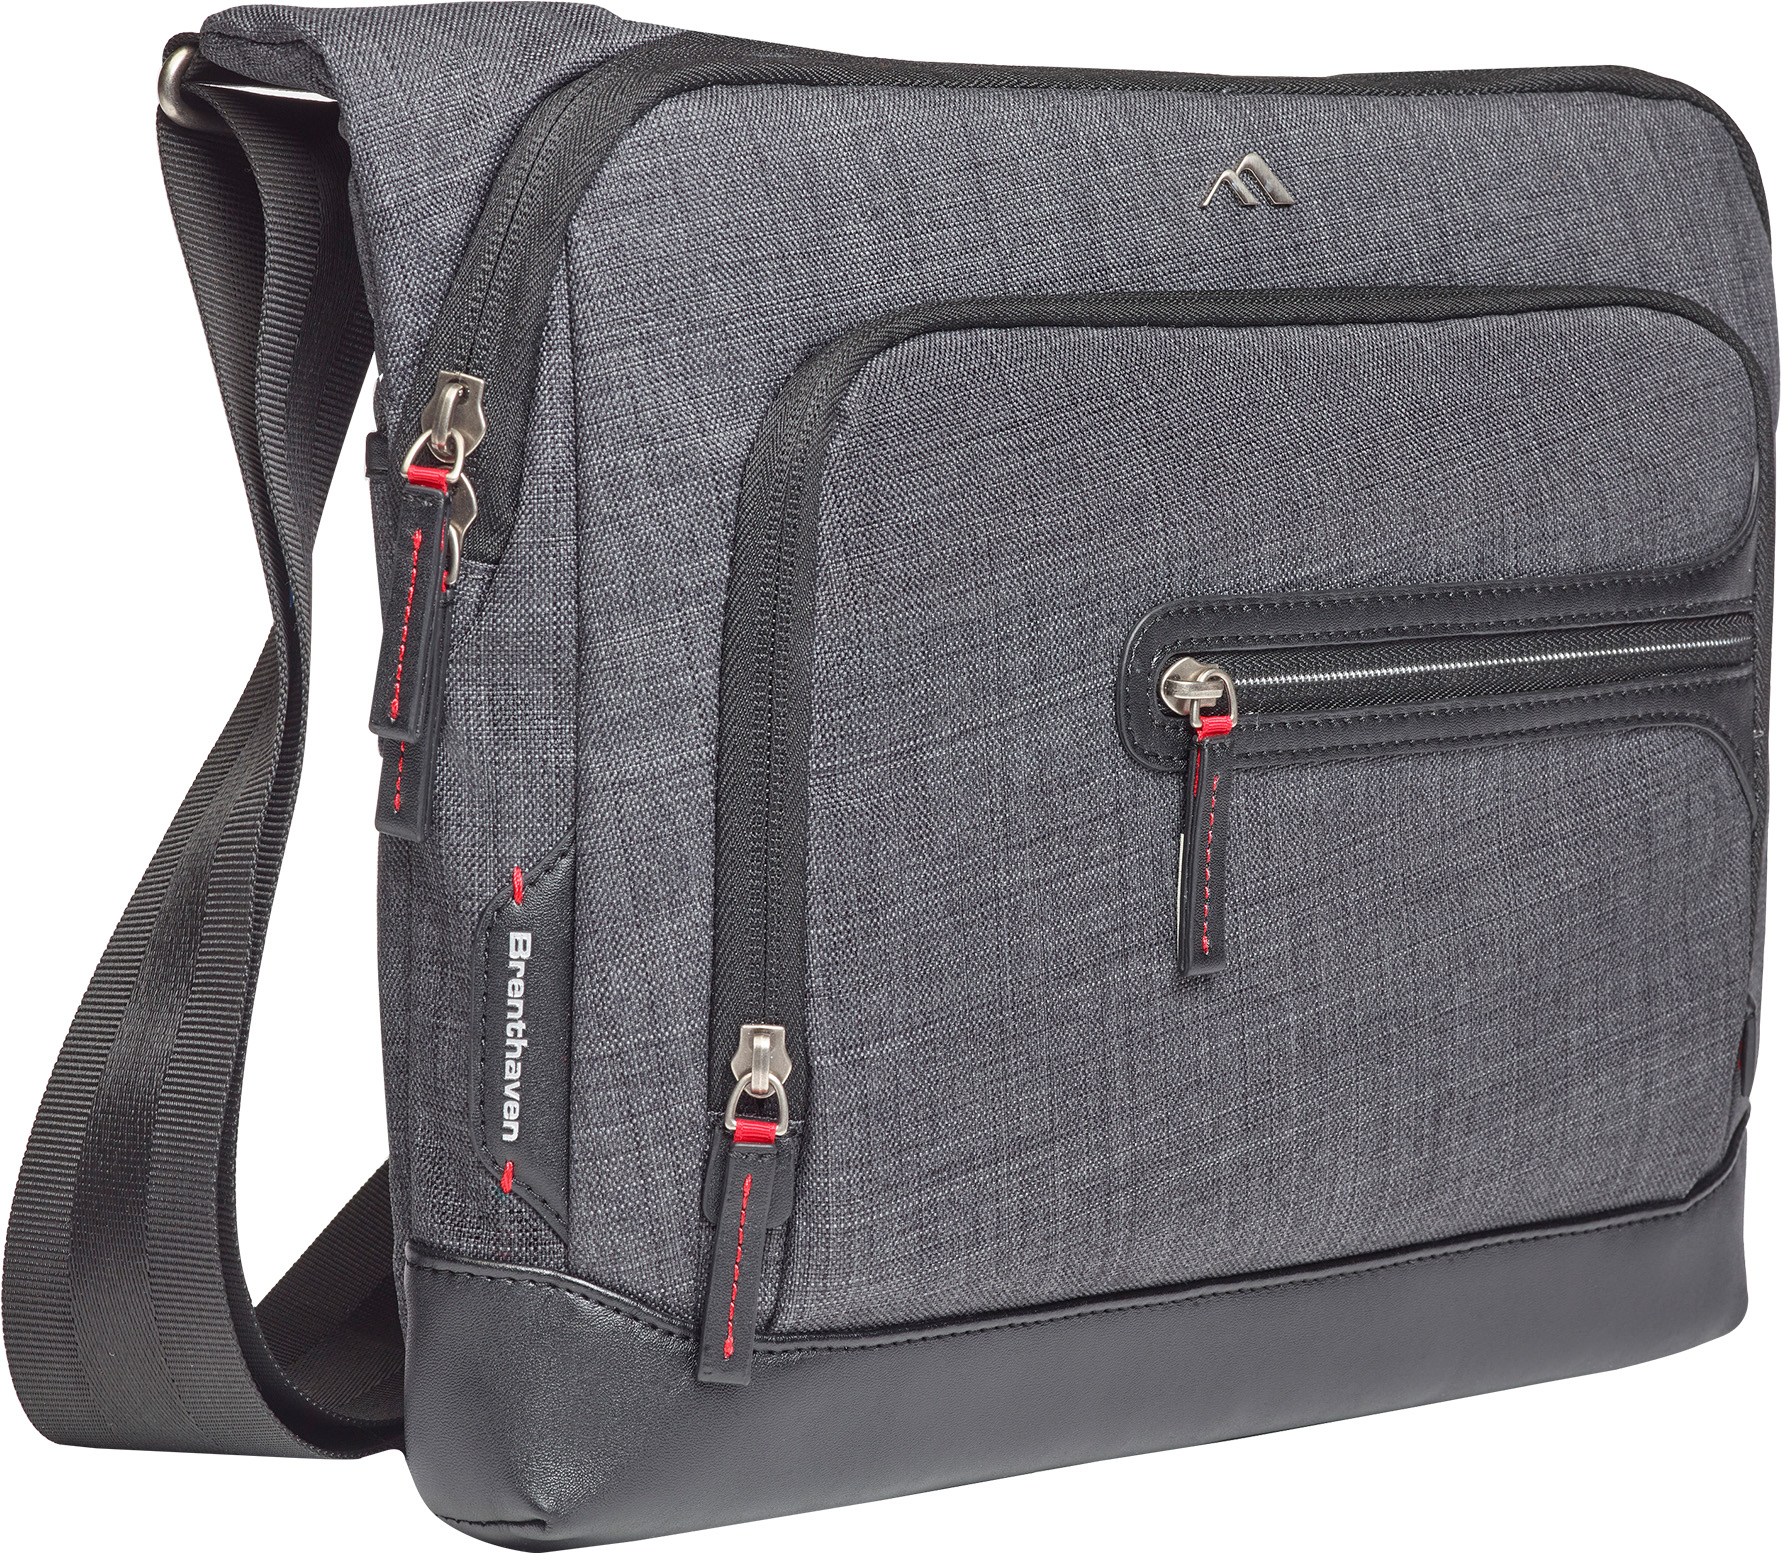 Brenthaven Collins Courier Bag (Graphite)